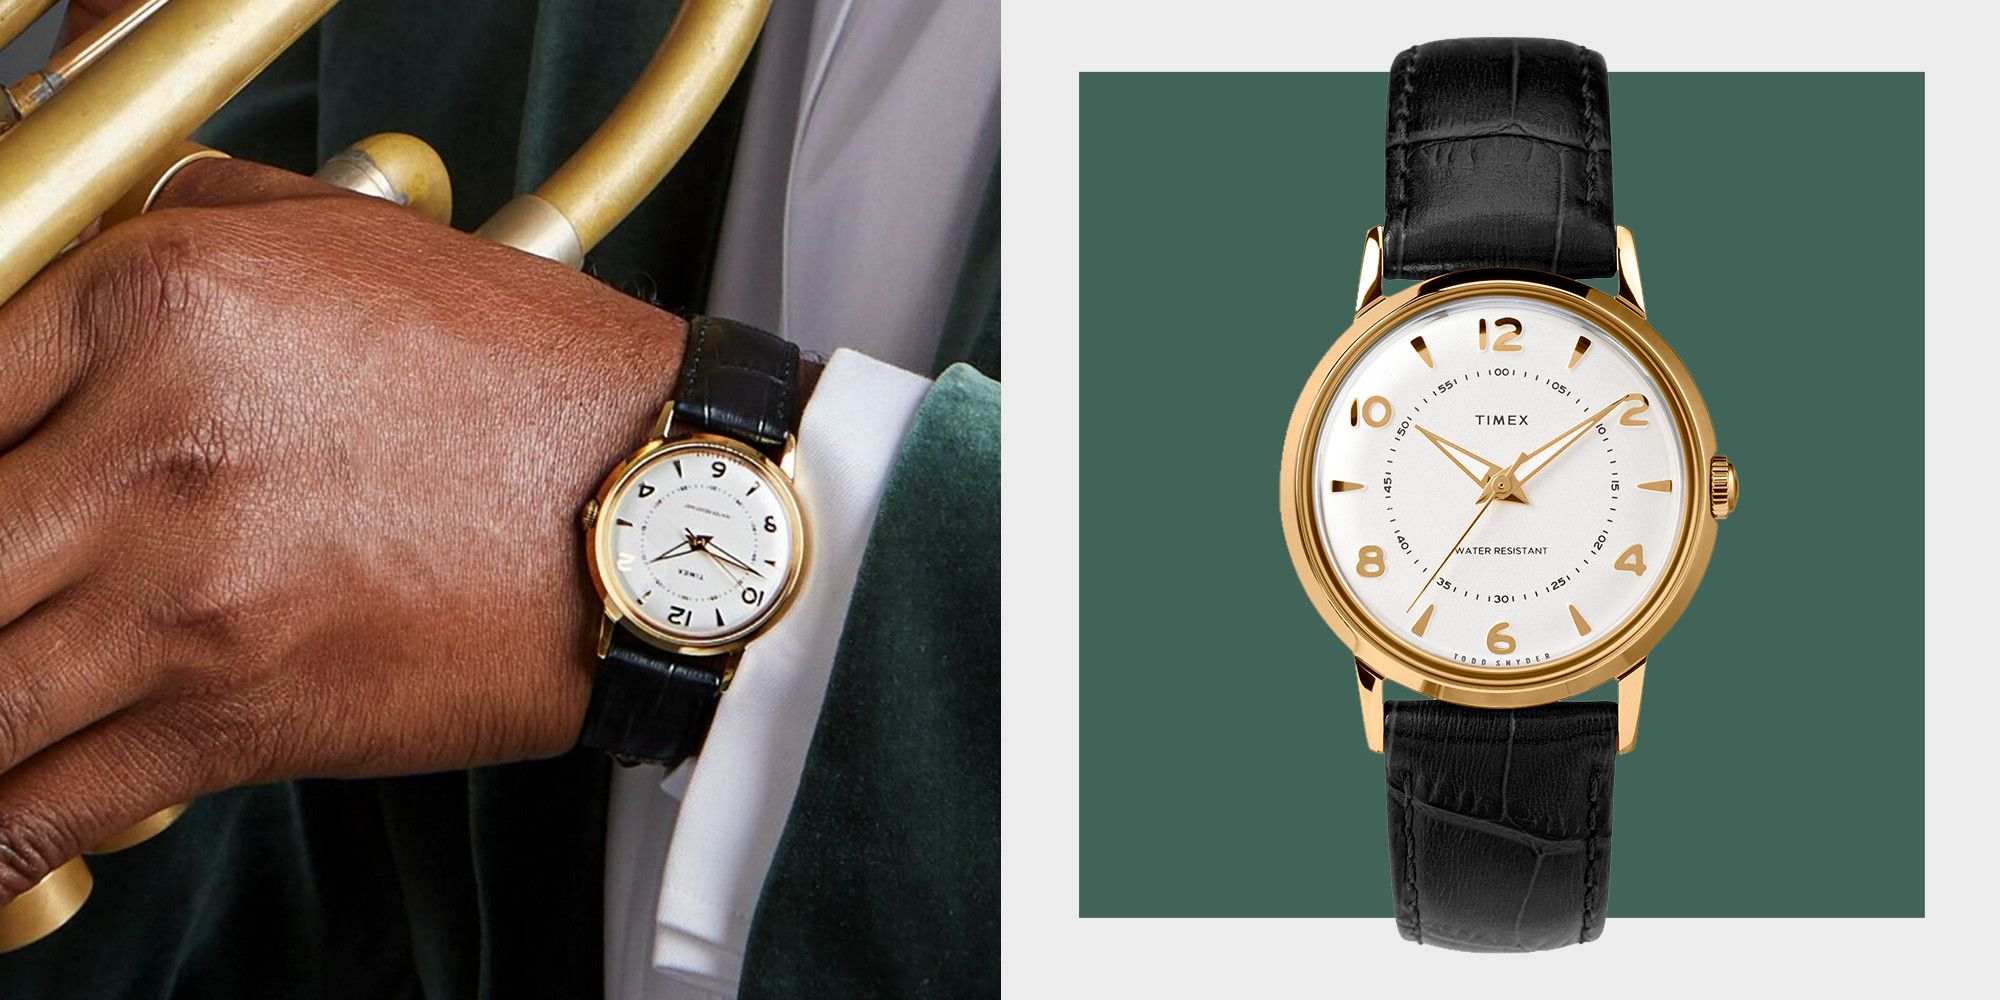 Todd Snyder and Timex Just Released a Very Shiny, Very Holiday-y Watch